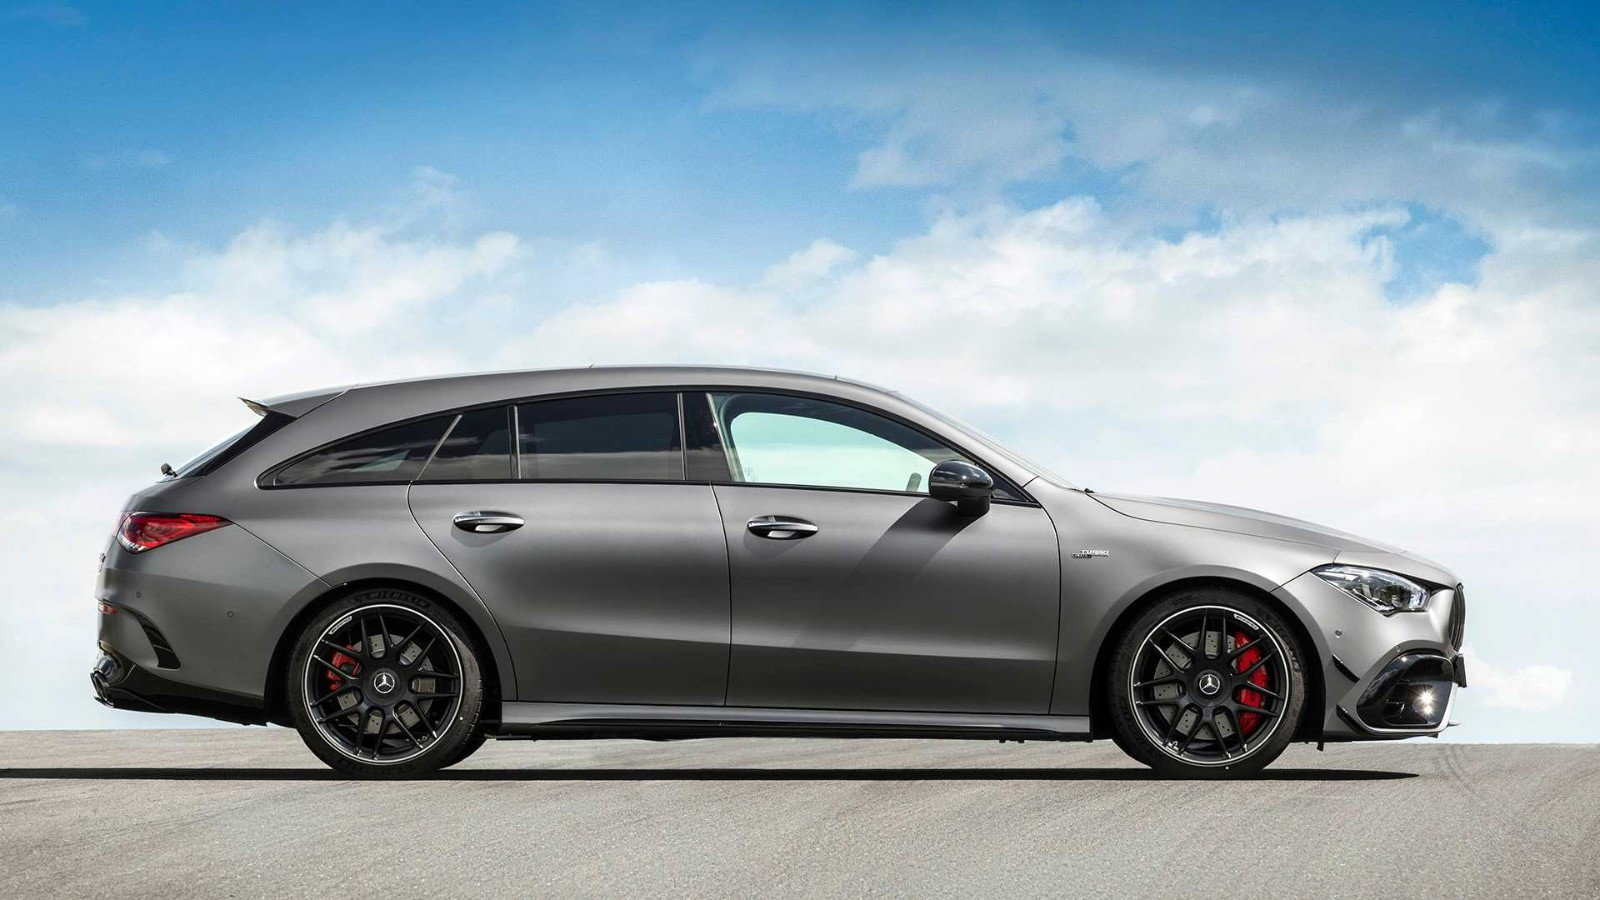 Mercedes-AMG CLA45 Shooting Brake is a Powerful Compact